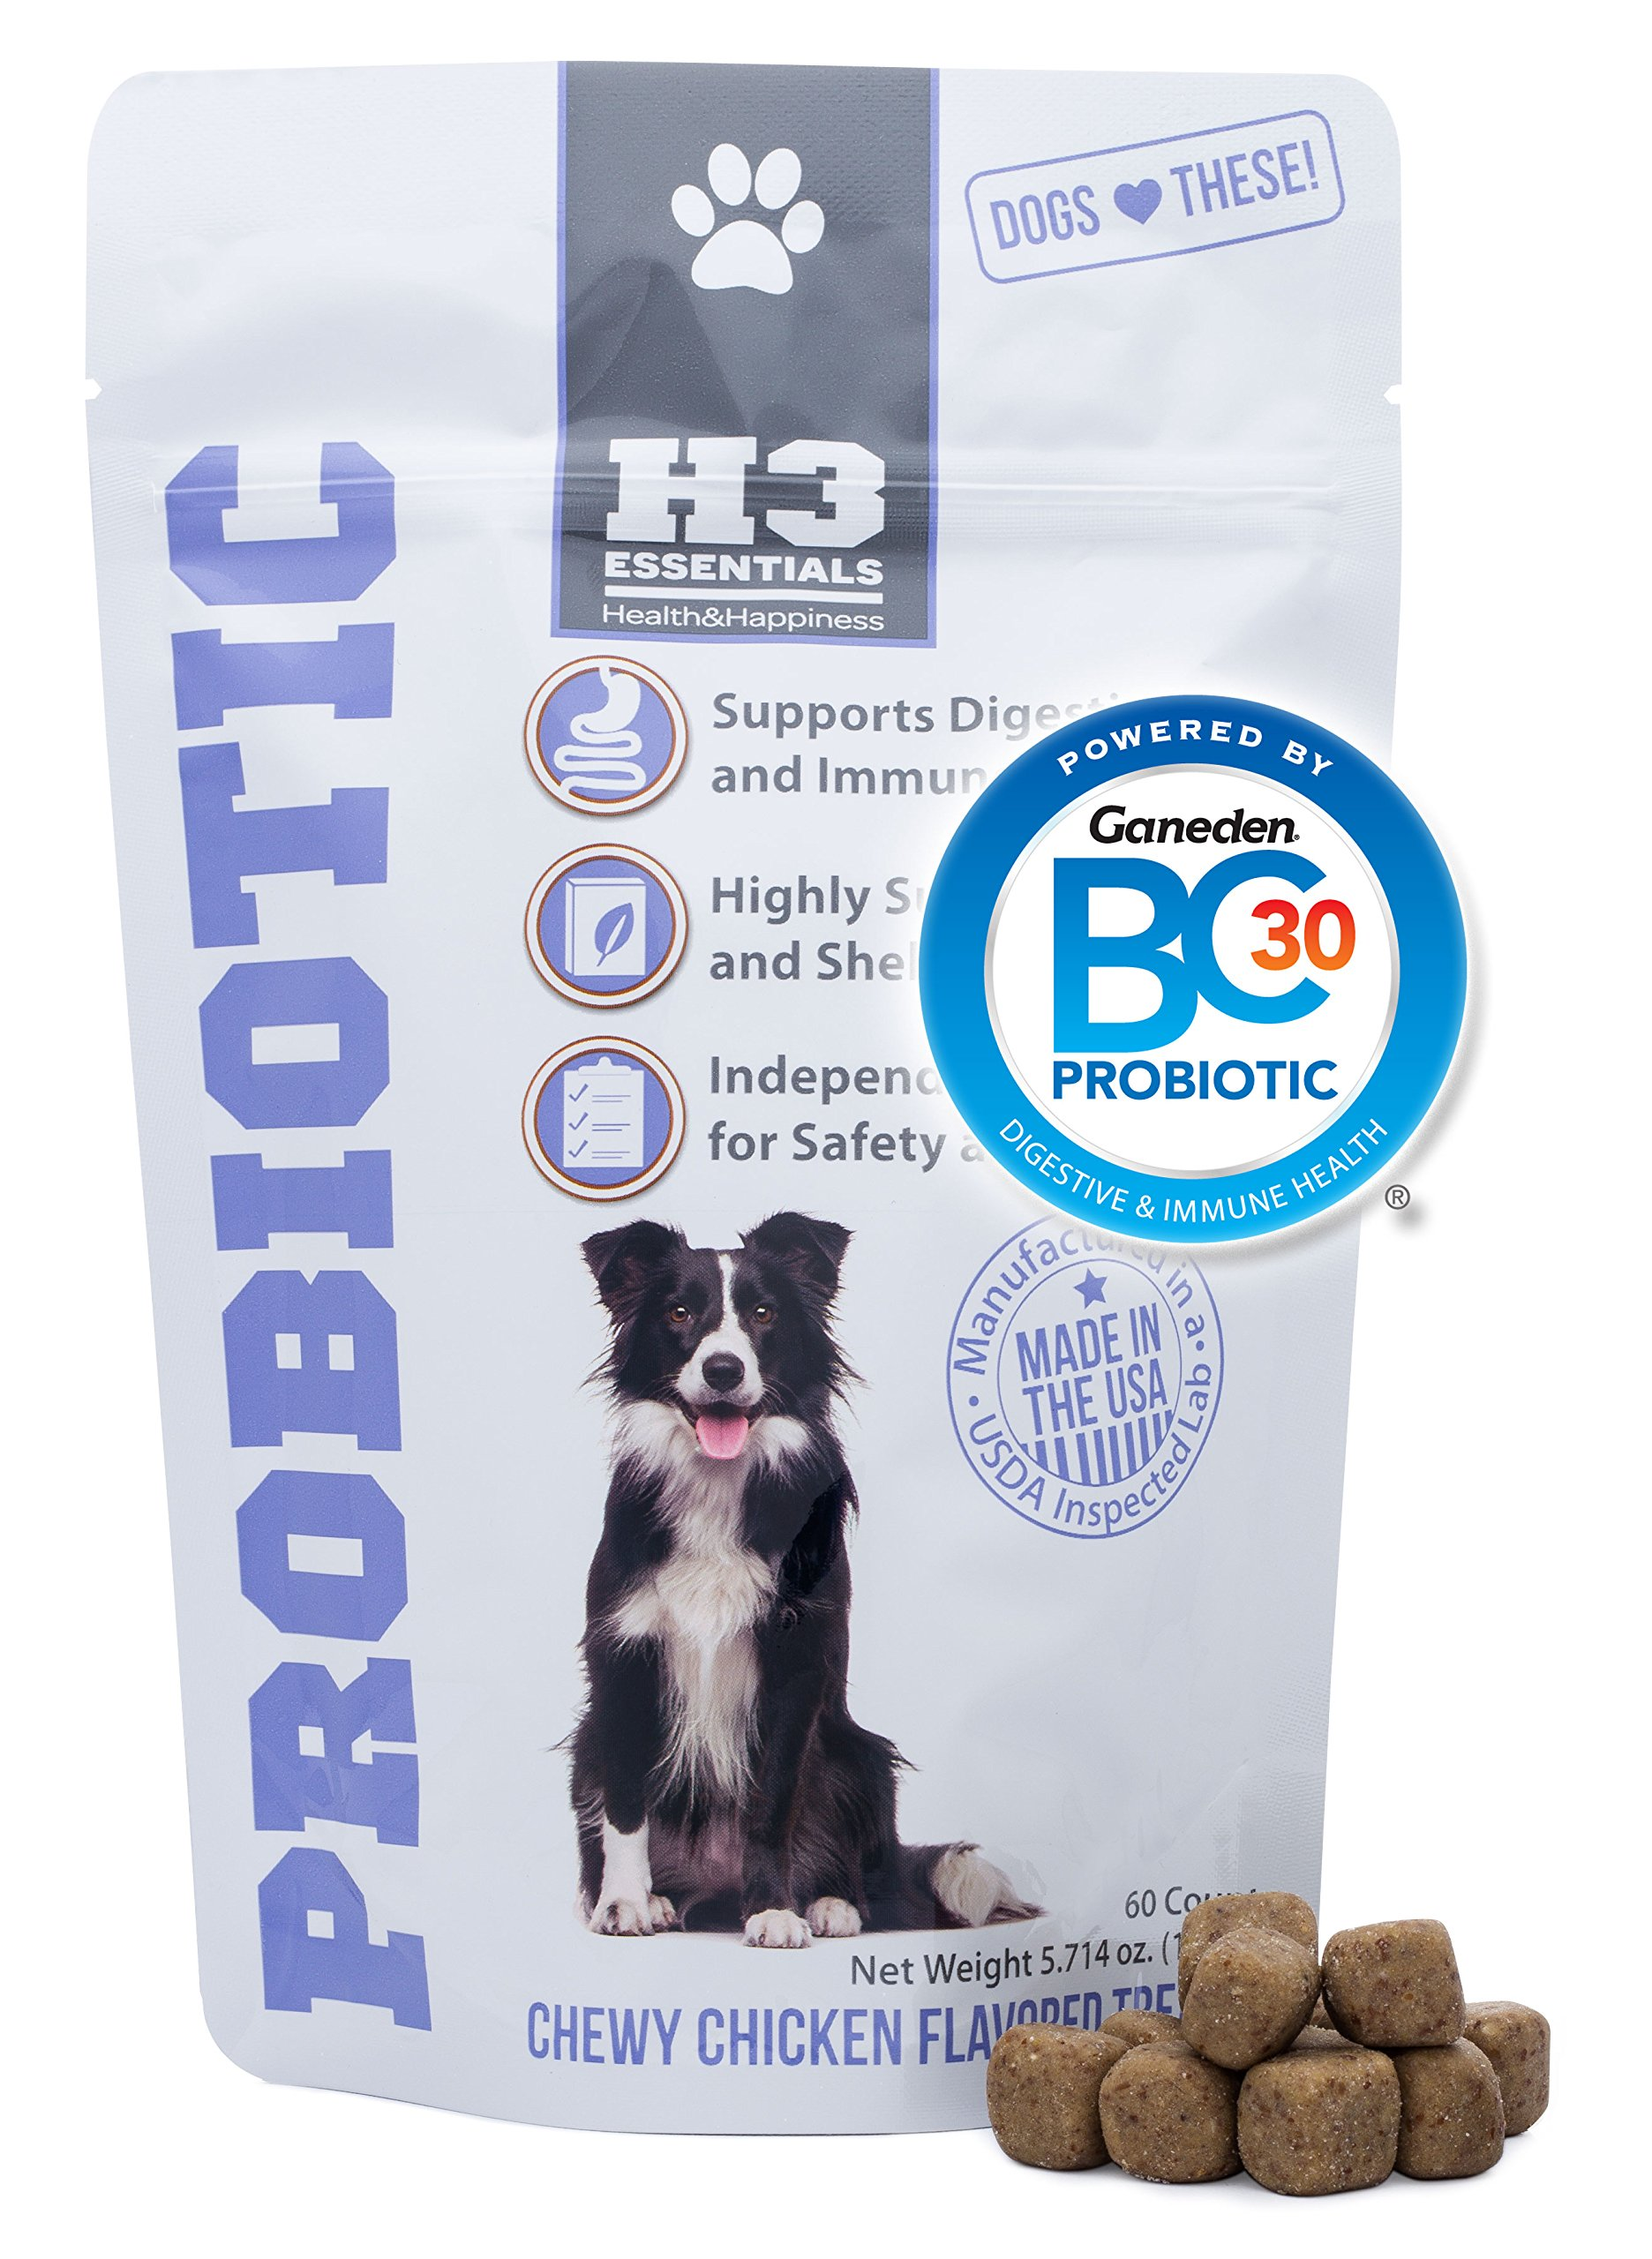 H3 Essentials - Probiotics for Dogs - for Immune and Digestive Health - Chicken Flavor - 60 Pieces by H3 Essentials